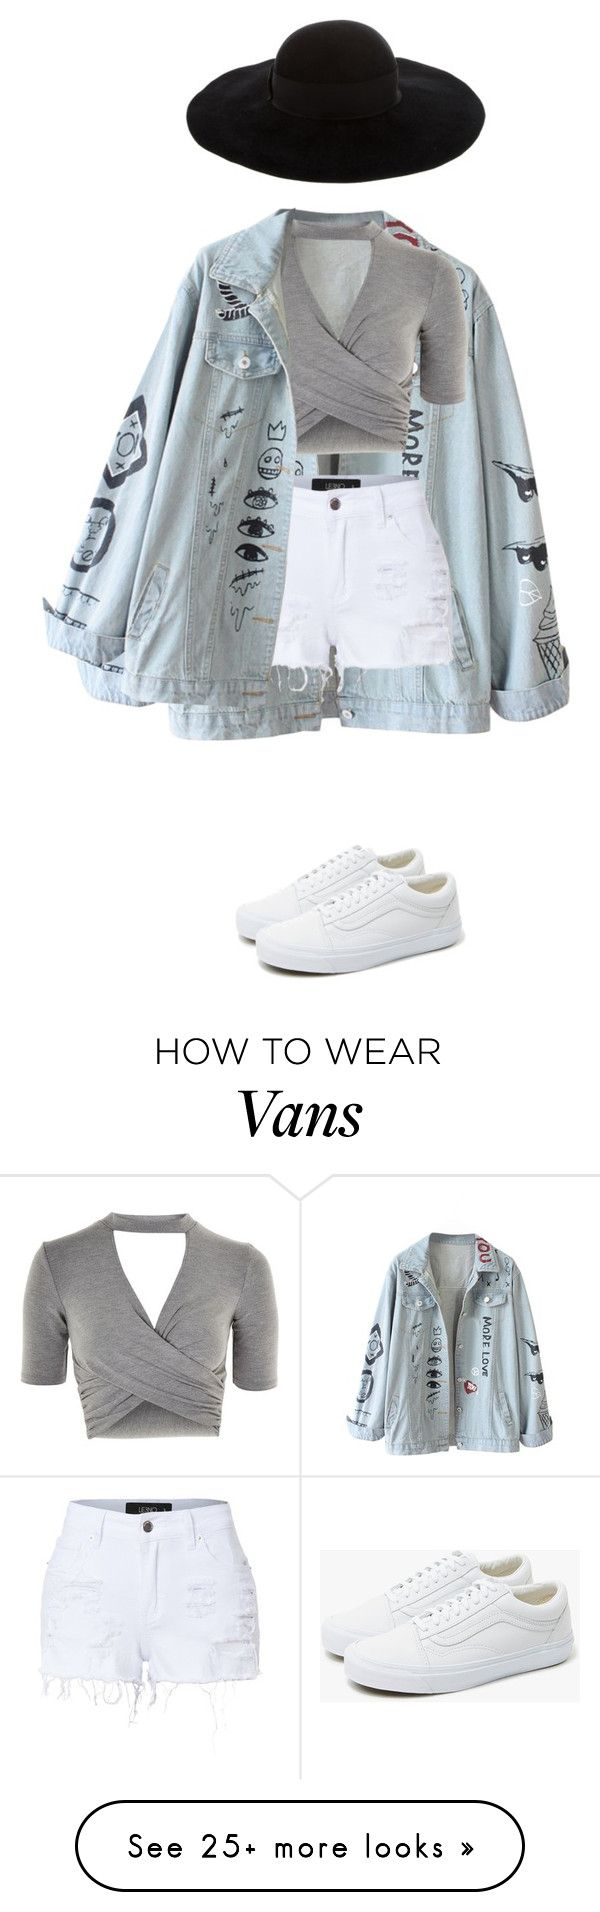 """mannequinxo x rise + shine .. behati"" by xoflawlessmannequinxo on Polyvore featuring Topshop, LE3NO, Vans and Eugenia Kim"